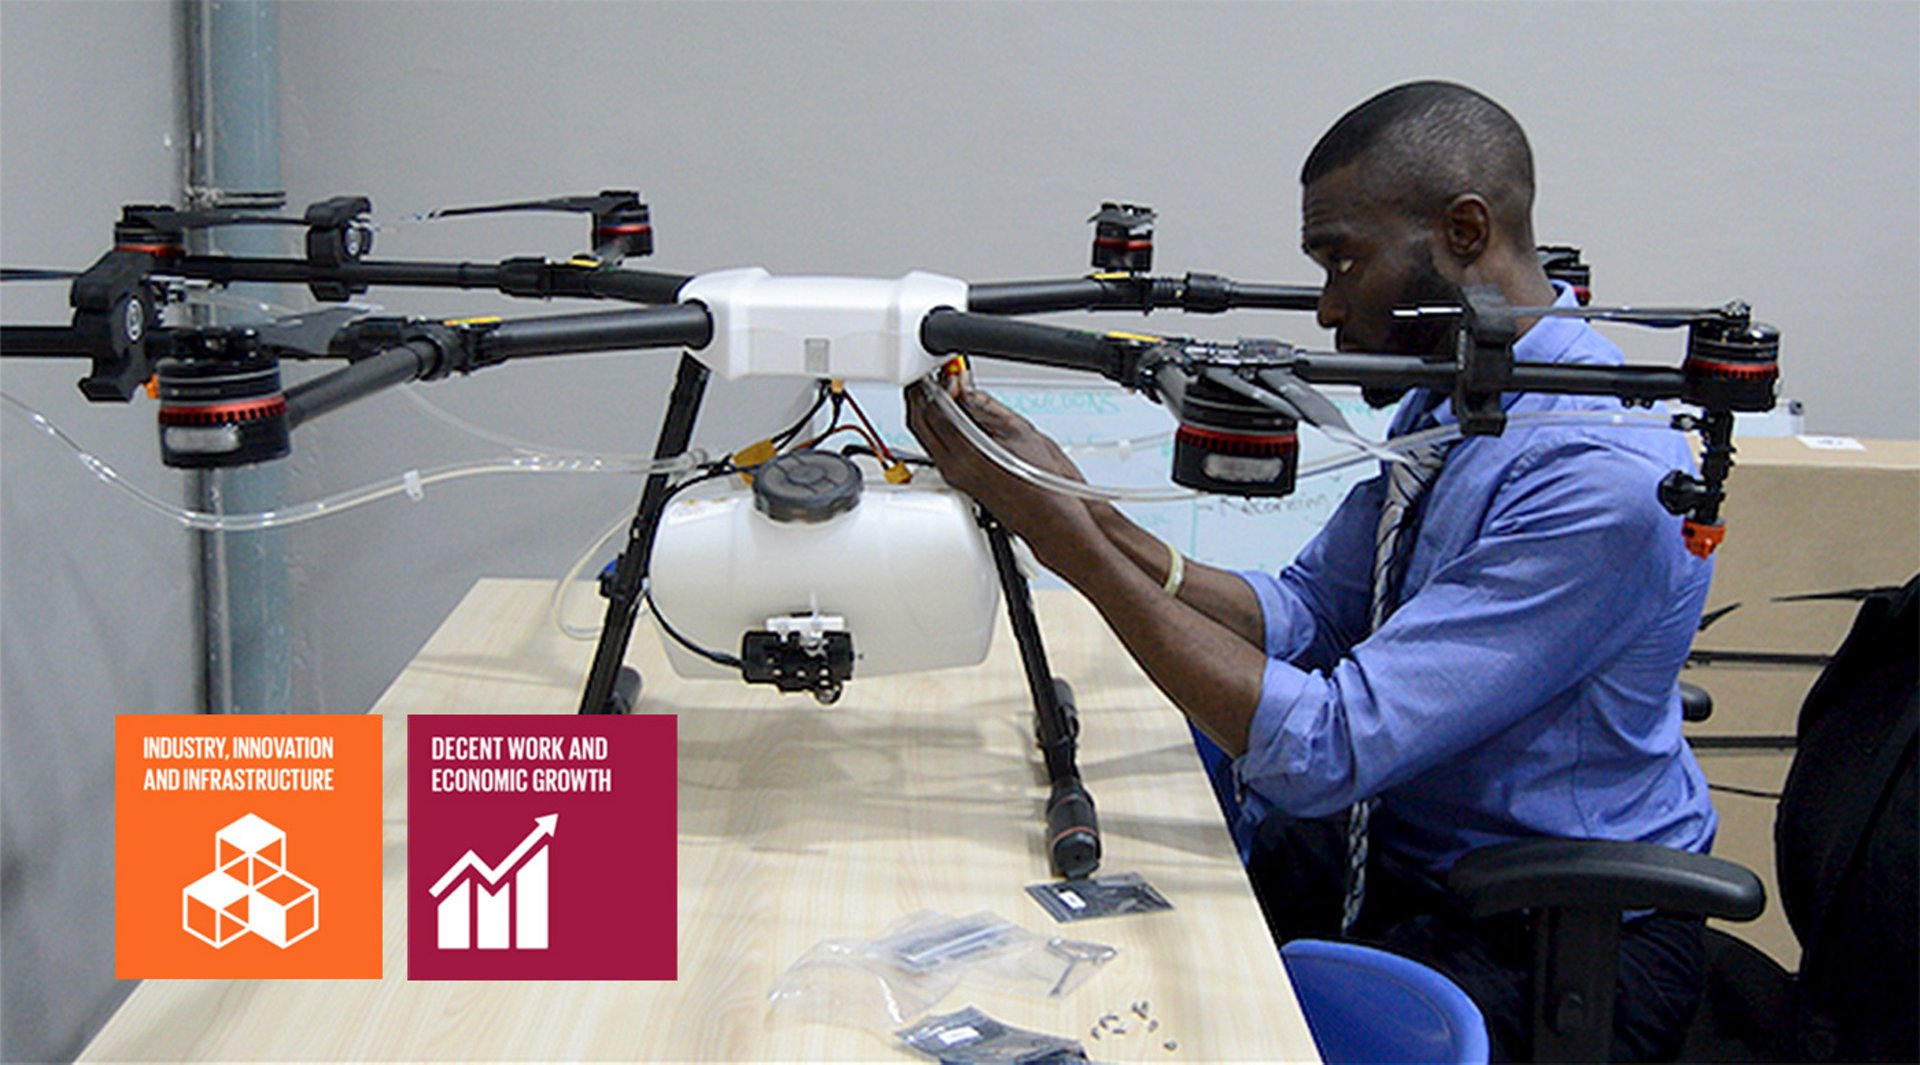 airbus-bizlab-teams-up-smart-farming-africa - News - Airbus